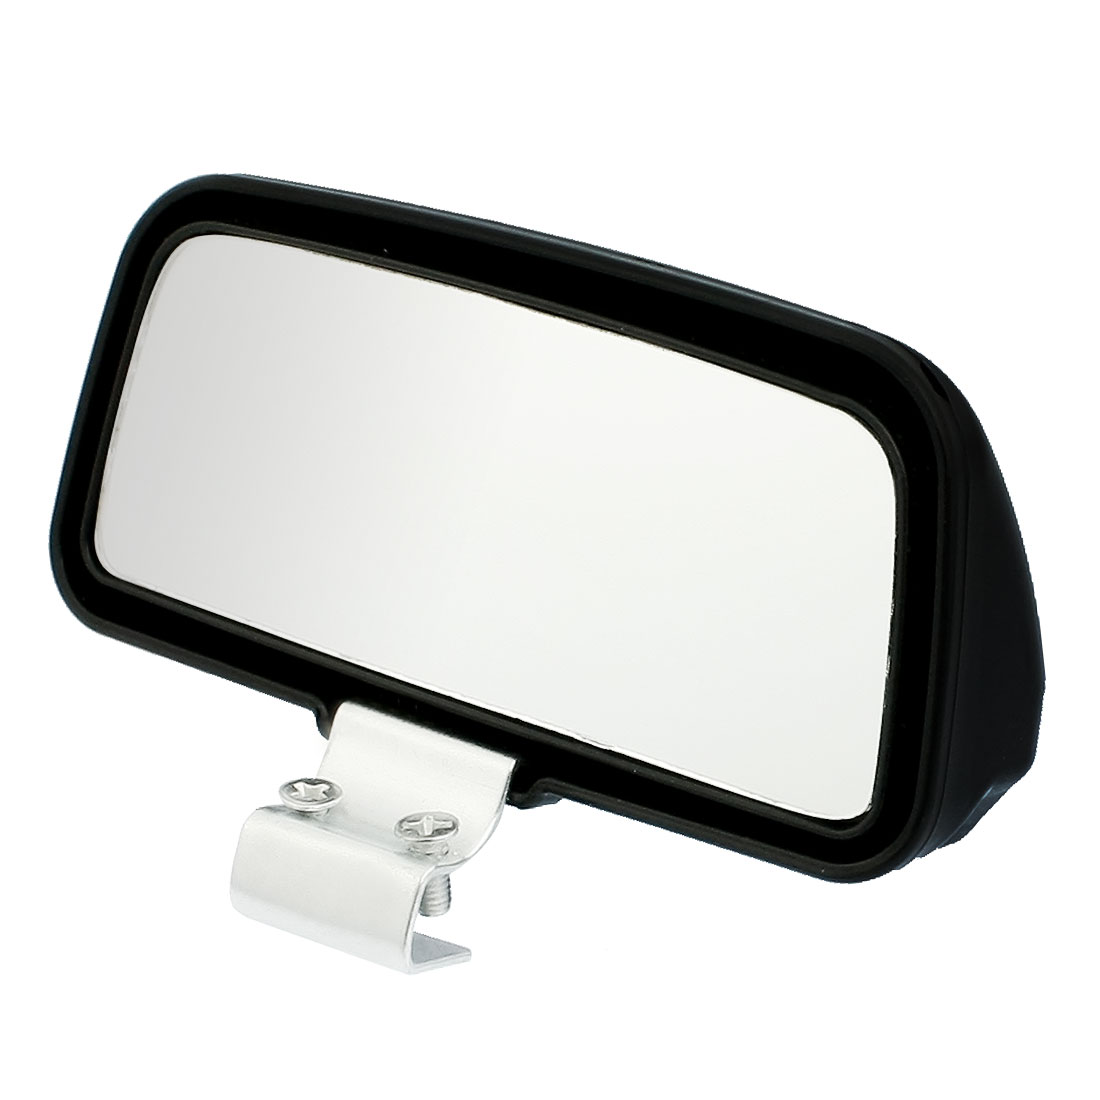 Black Shell Side Rear View Blind Spot Mirror for Car Truck